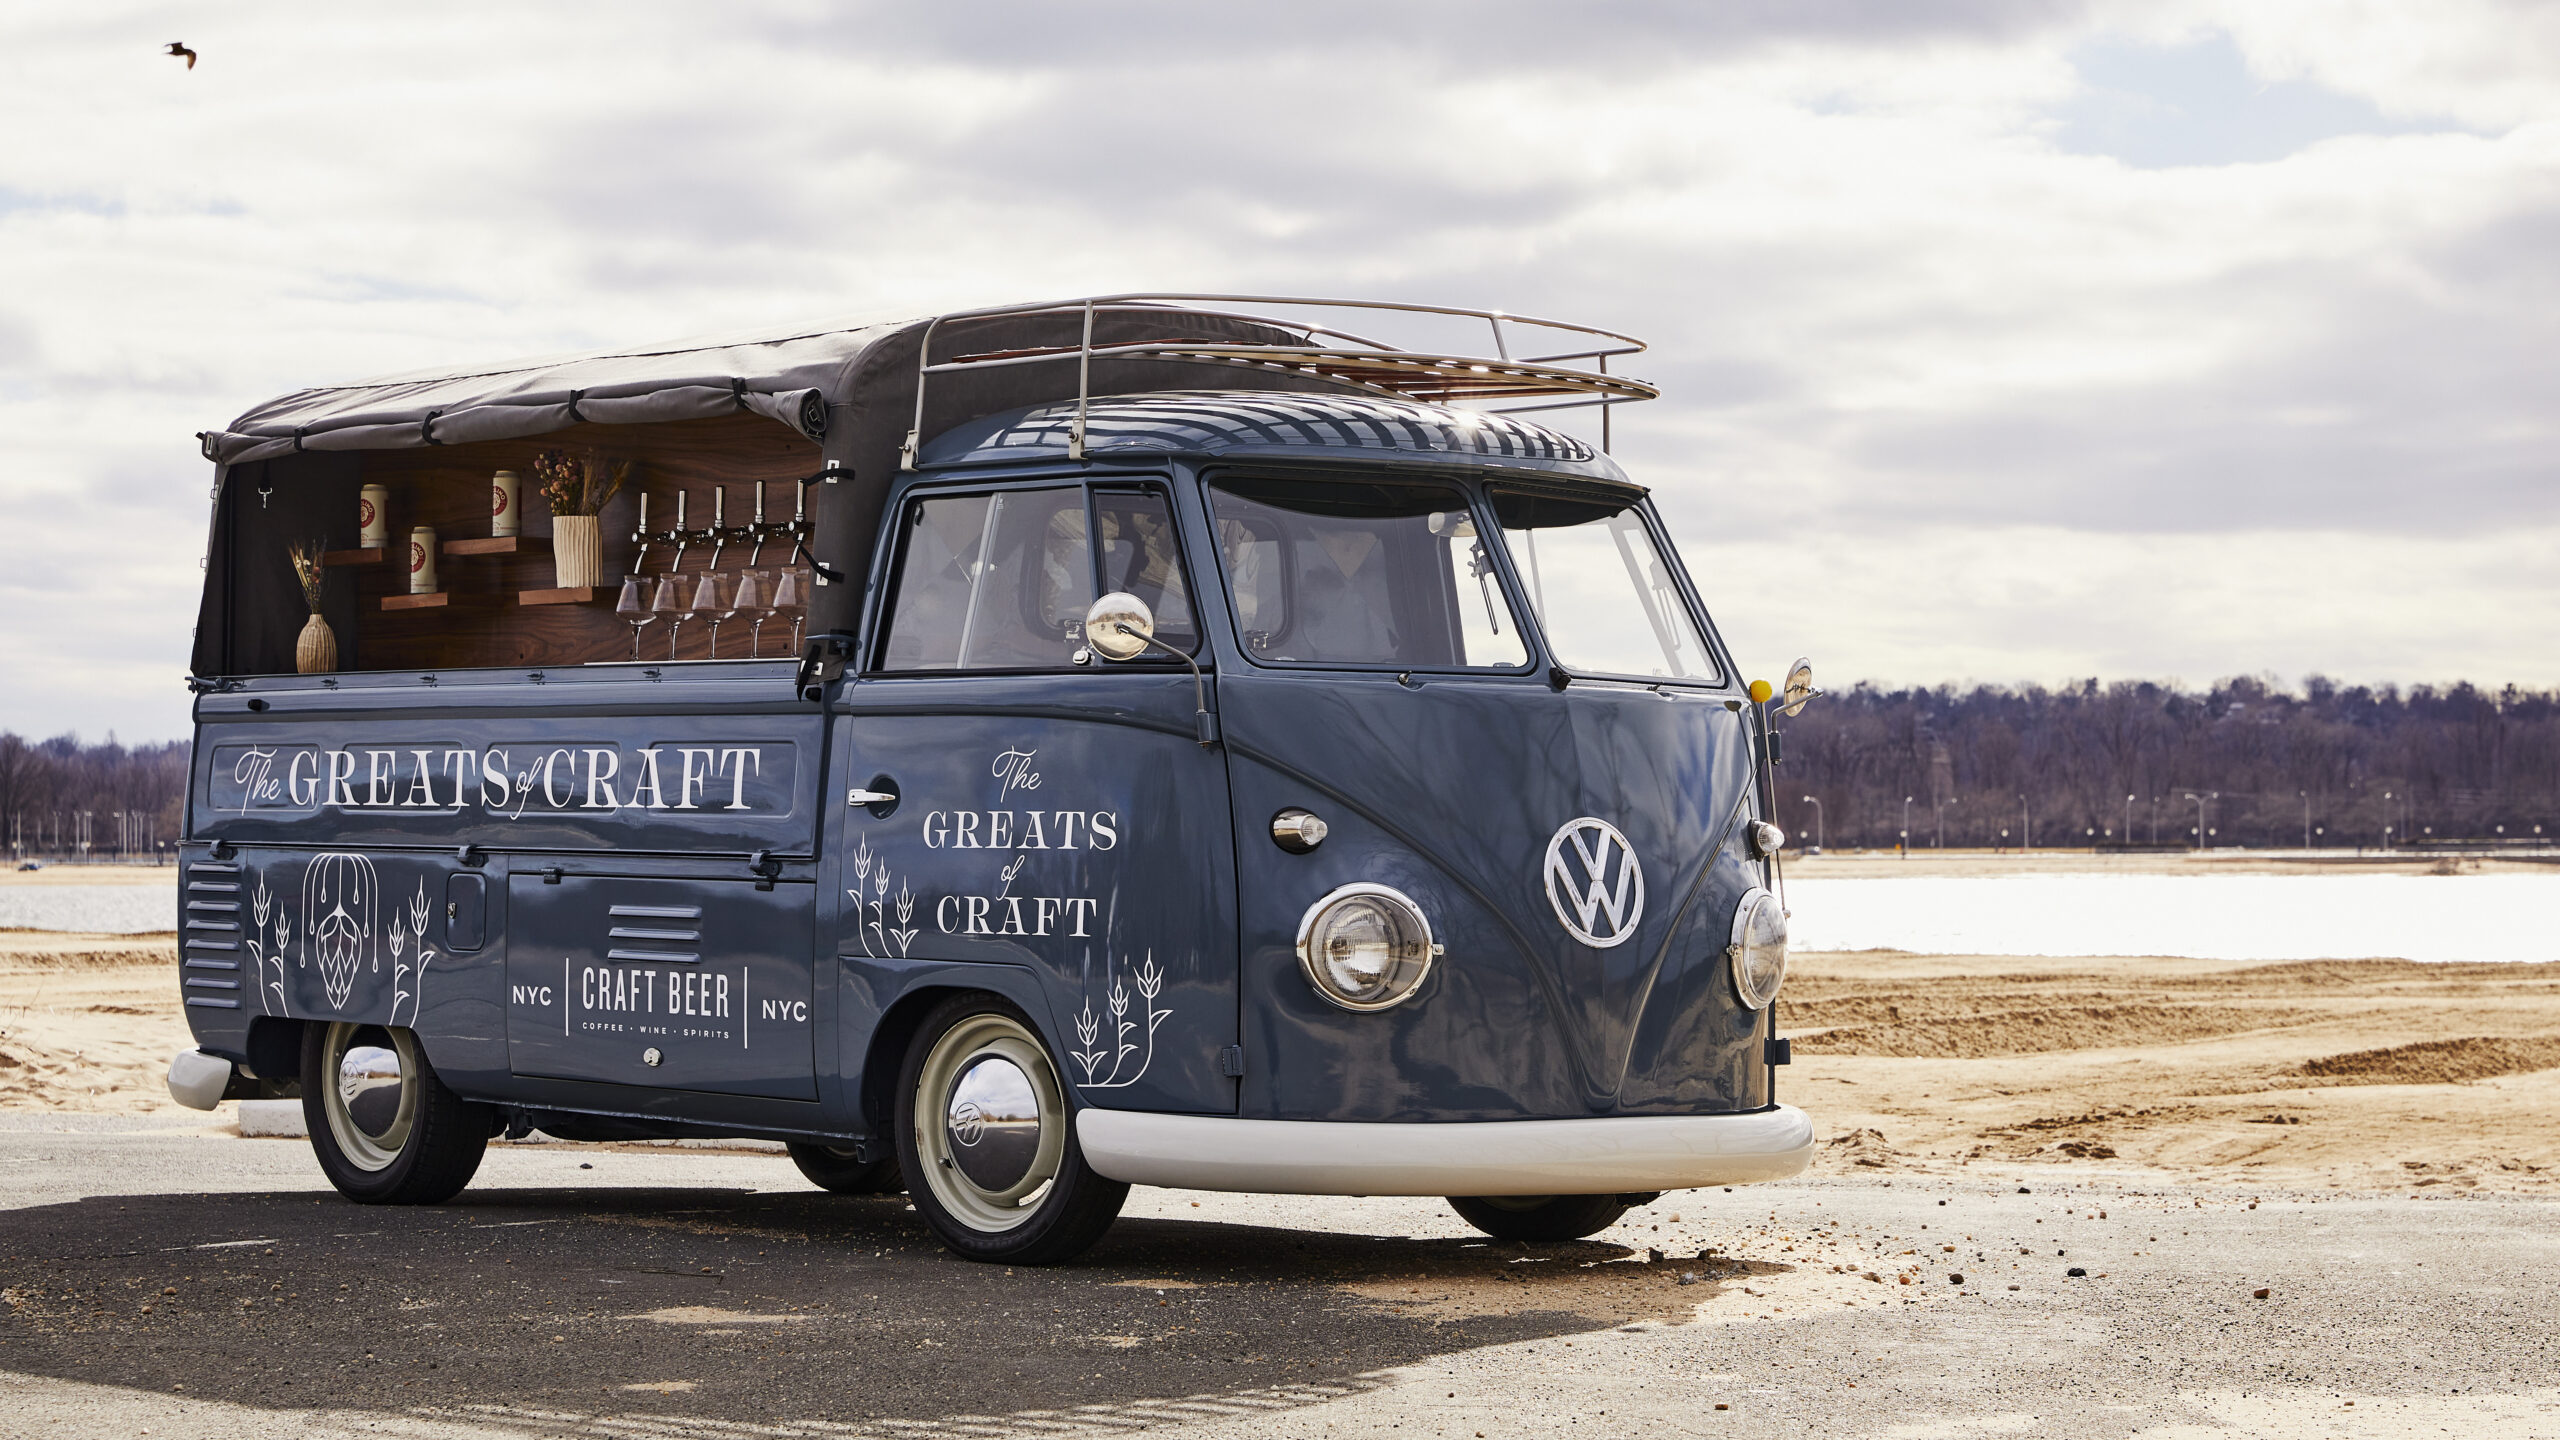 Greats of Craft Mobile Bar